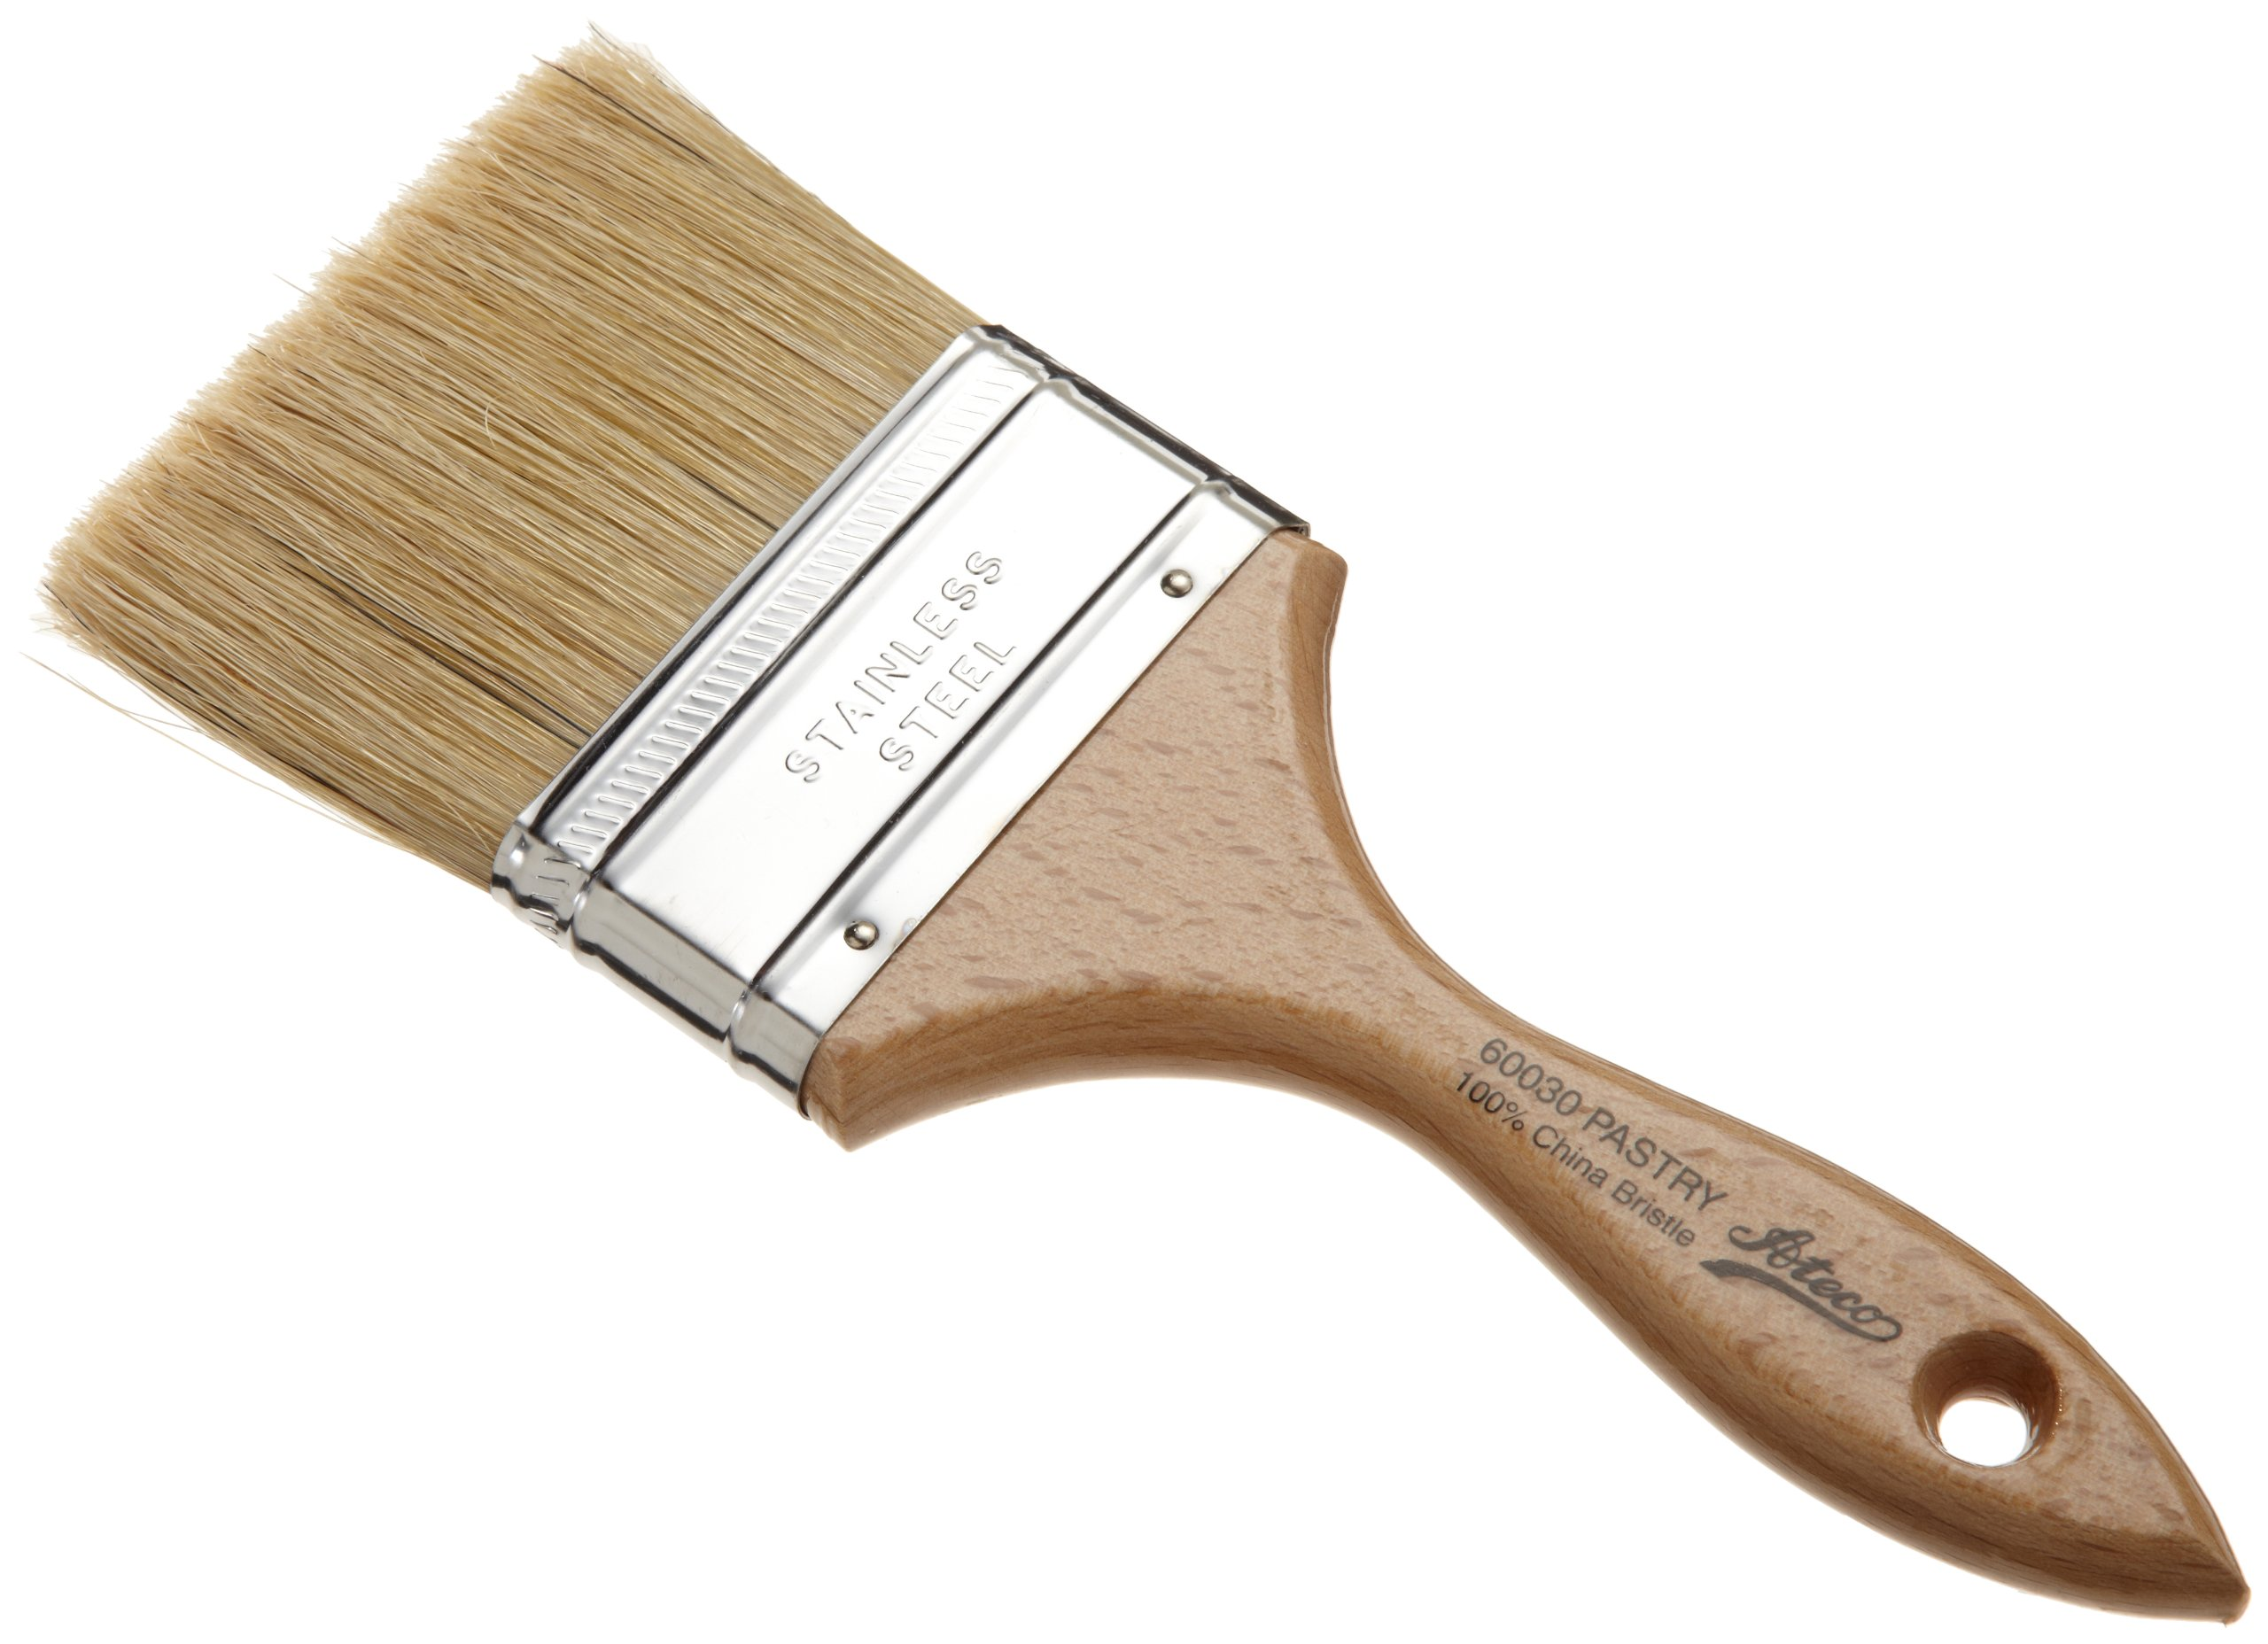 Ateco 60030 Pastry Brush, 3-Inch Wide Head with Natural White Boar Bristles, Stainless Steel Ferrule & Wood Handle